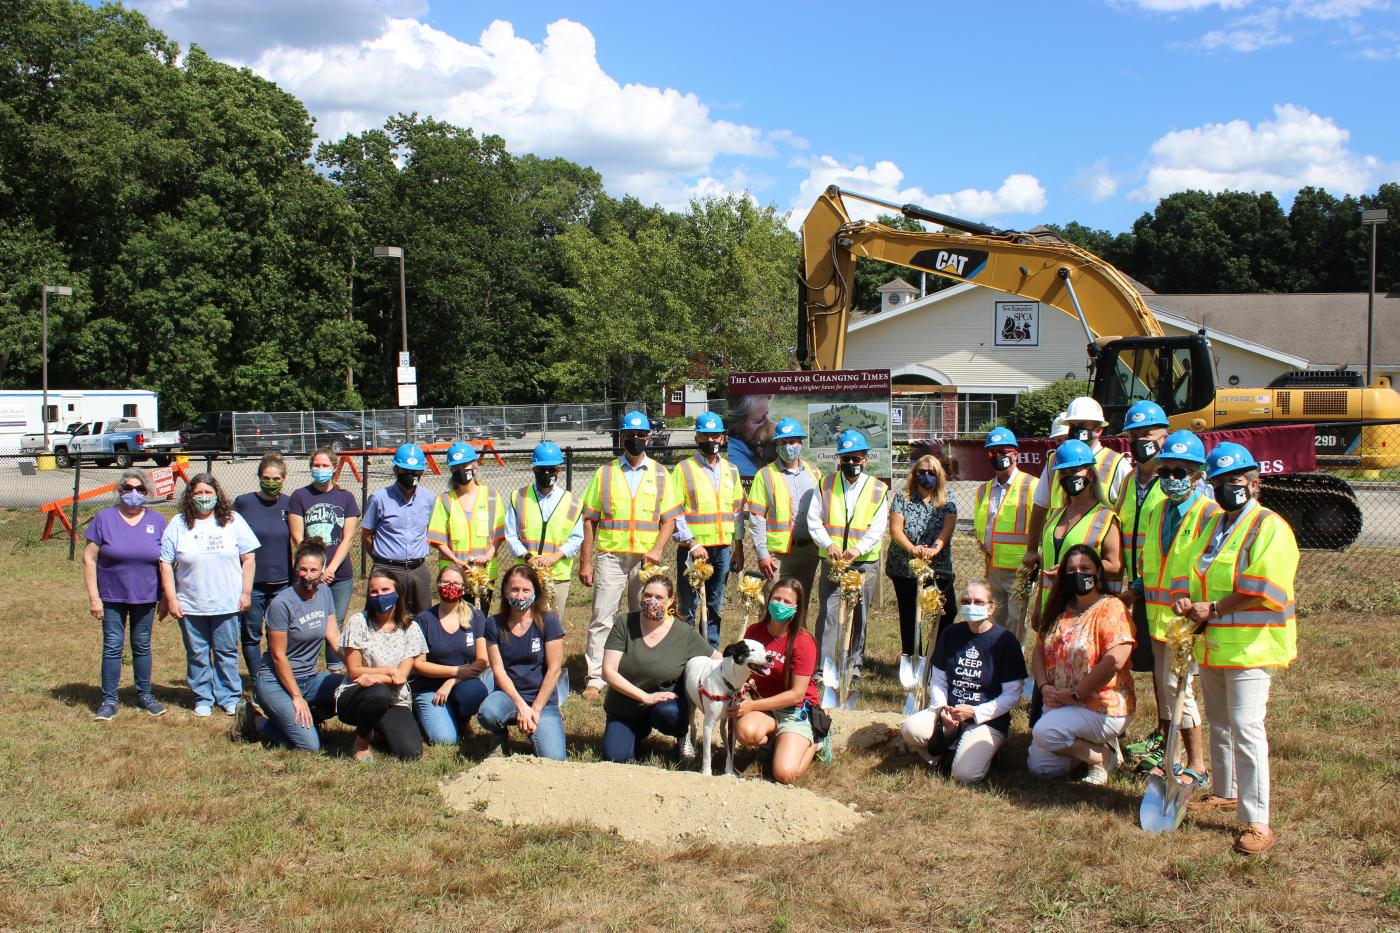 New Hampshire SPCA Celebrates Groundbreaking